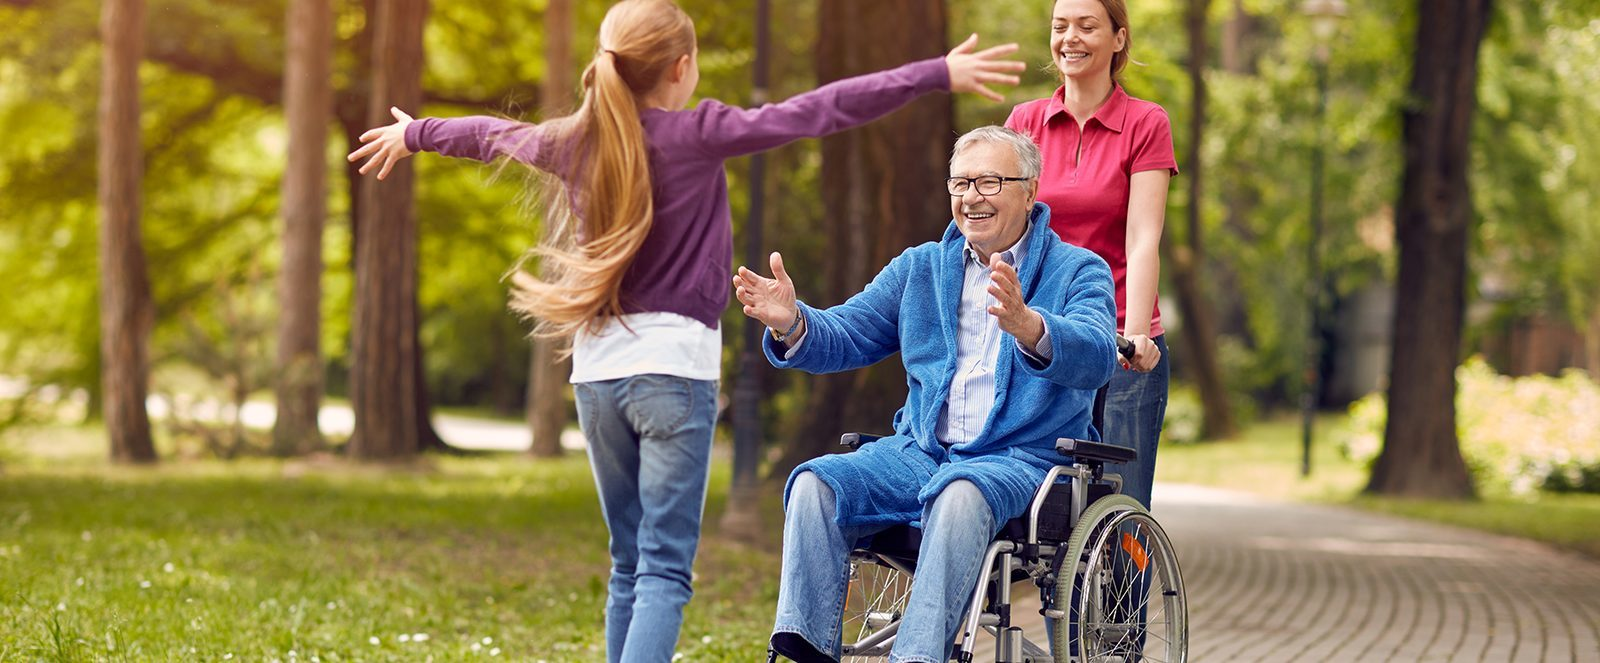 Holiday for disabled persons in the Netherlands